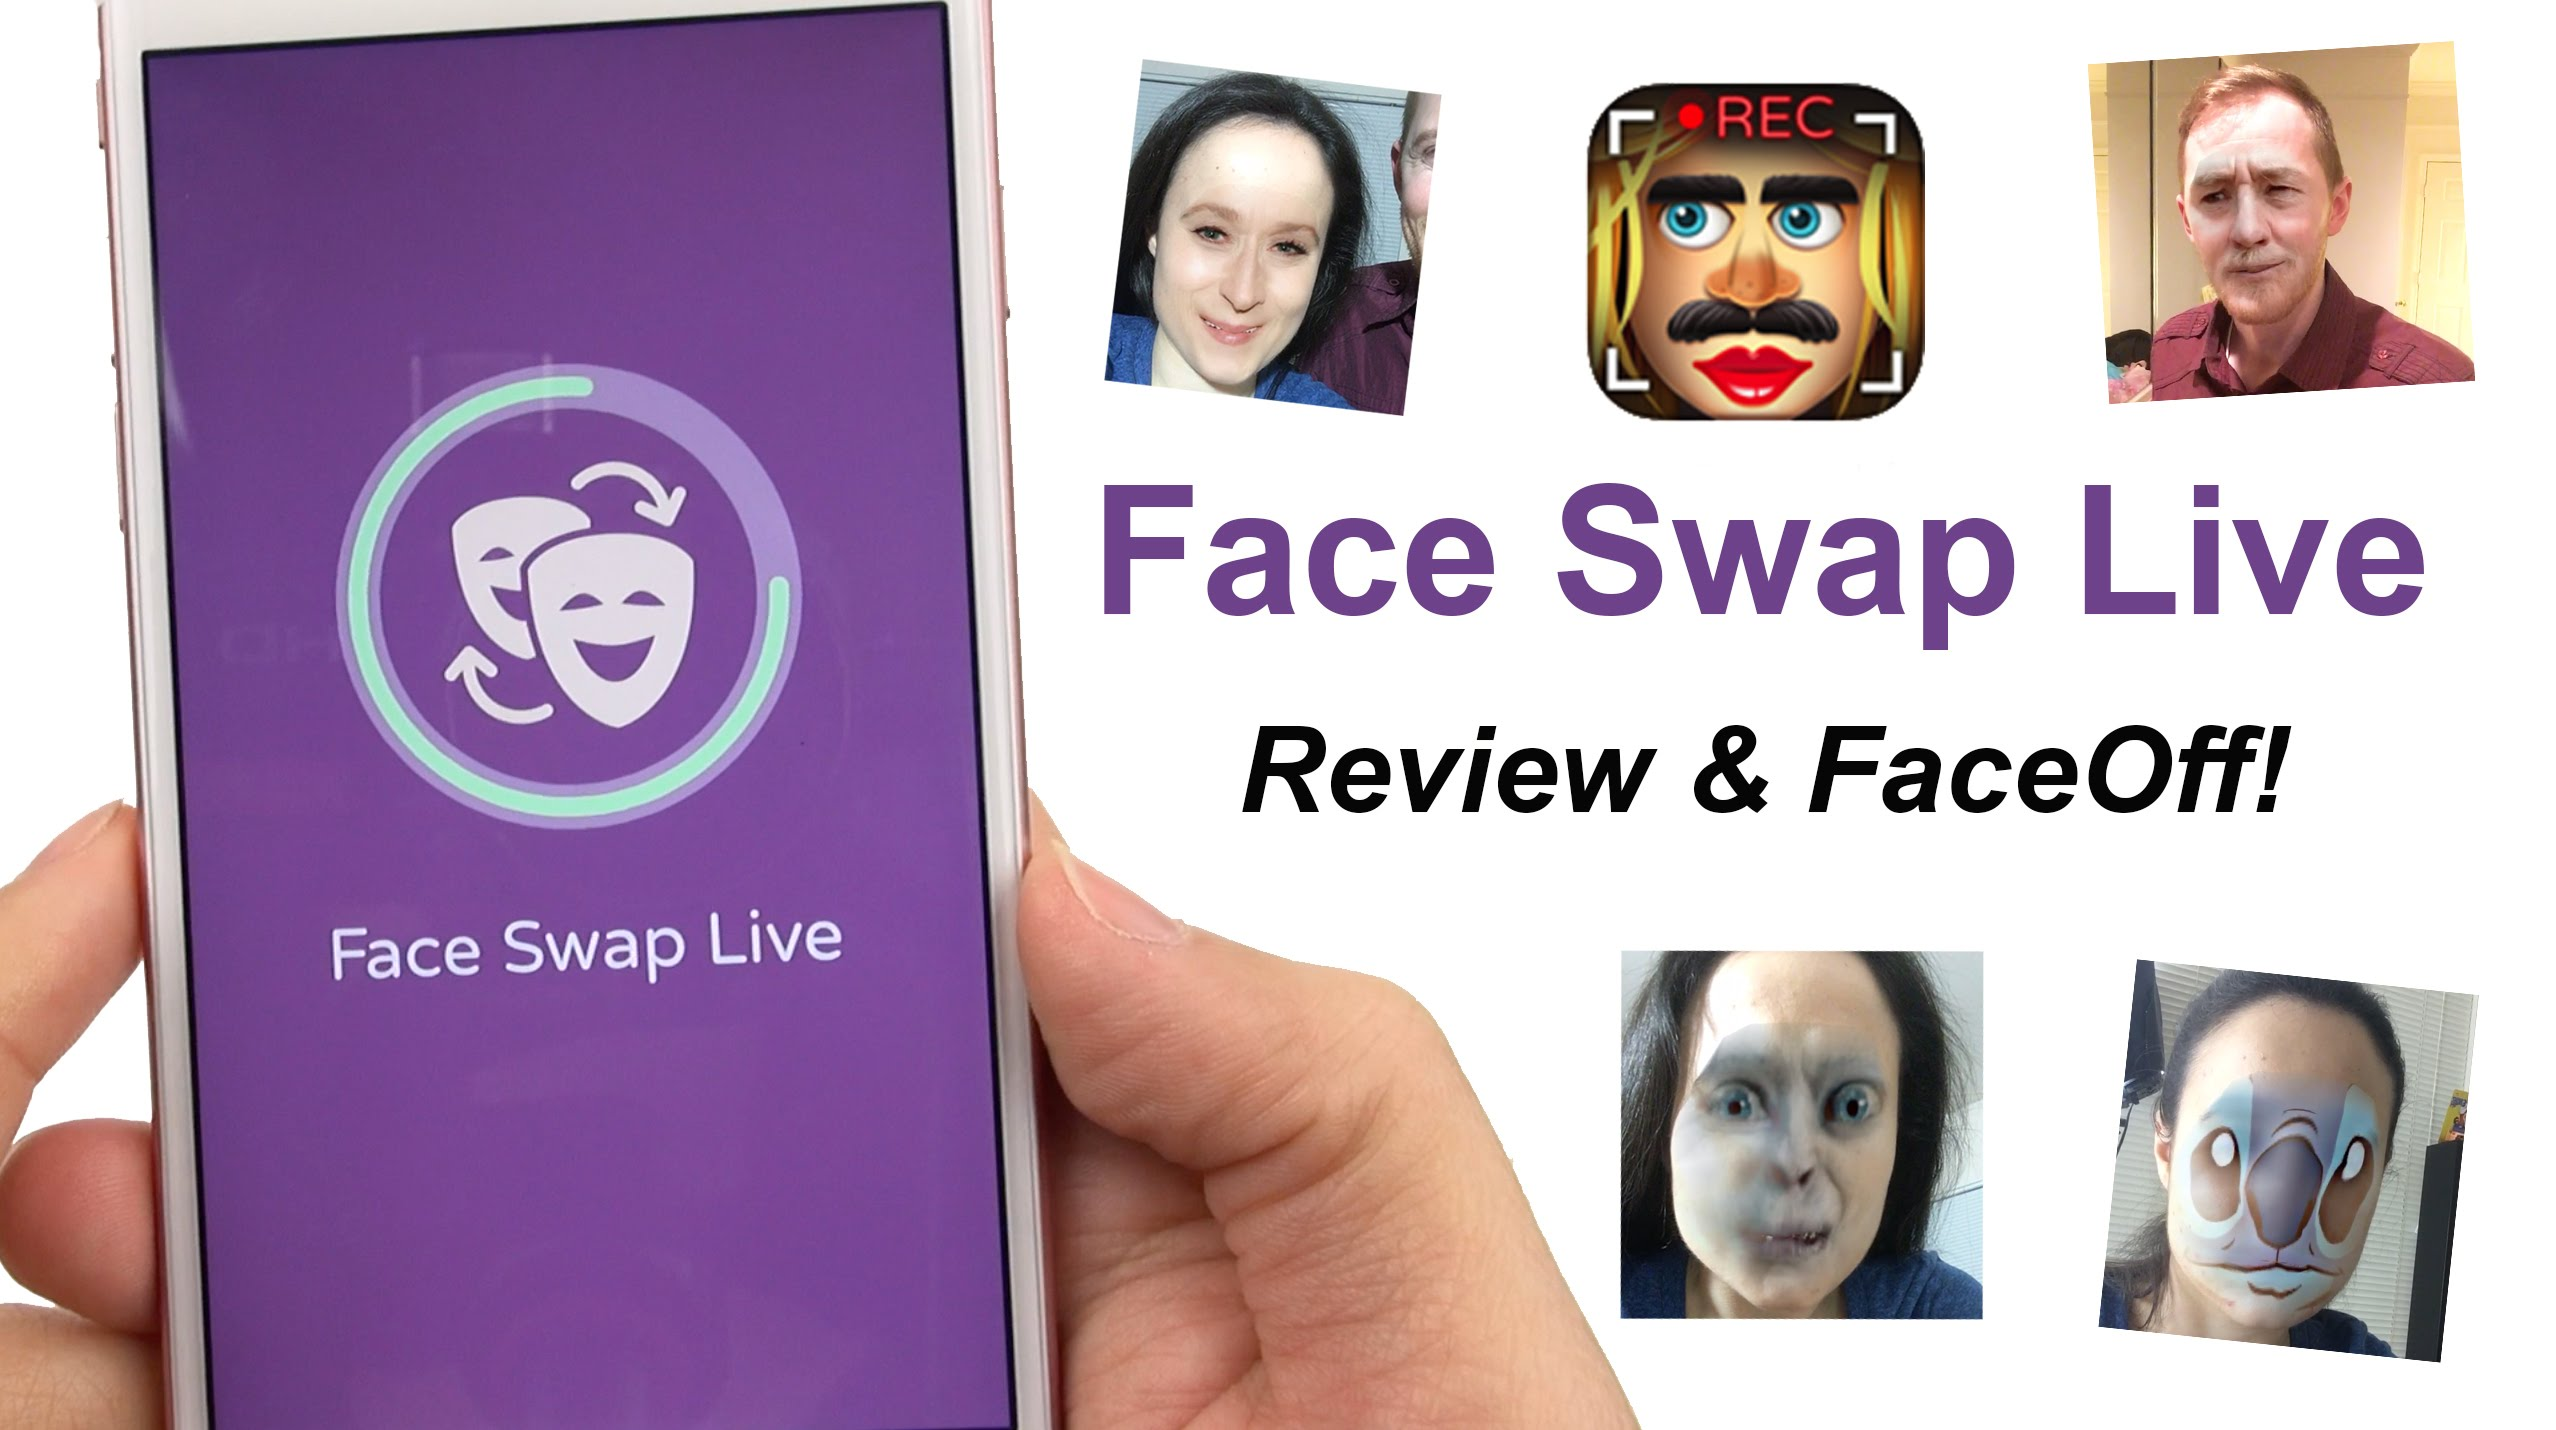 Face Swap Live App Review & FACE OFF!